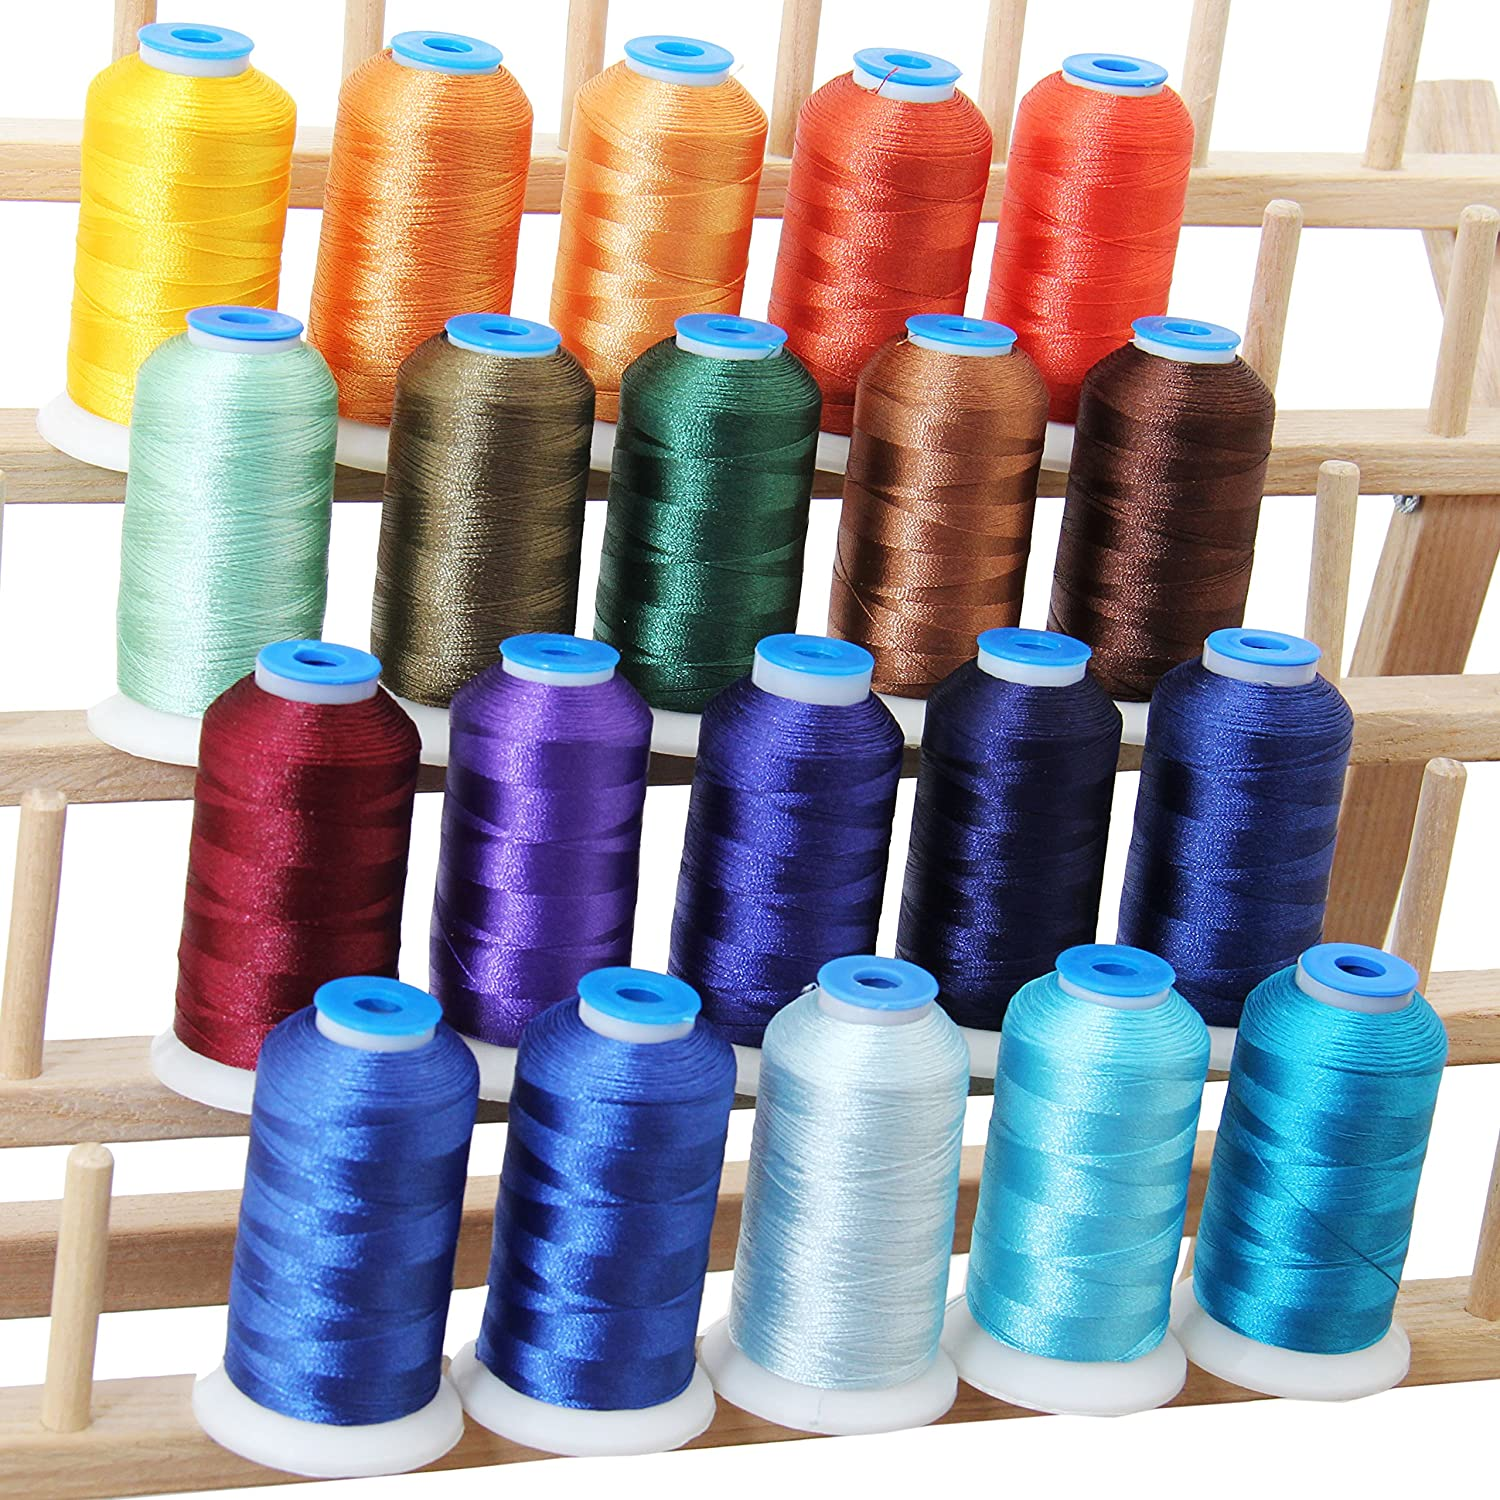 20 Cone Set Polyester Embroidery Thread 1000m Spools - Pastel Colors (11 Different sets available) Threadart